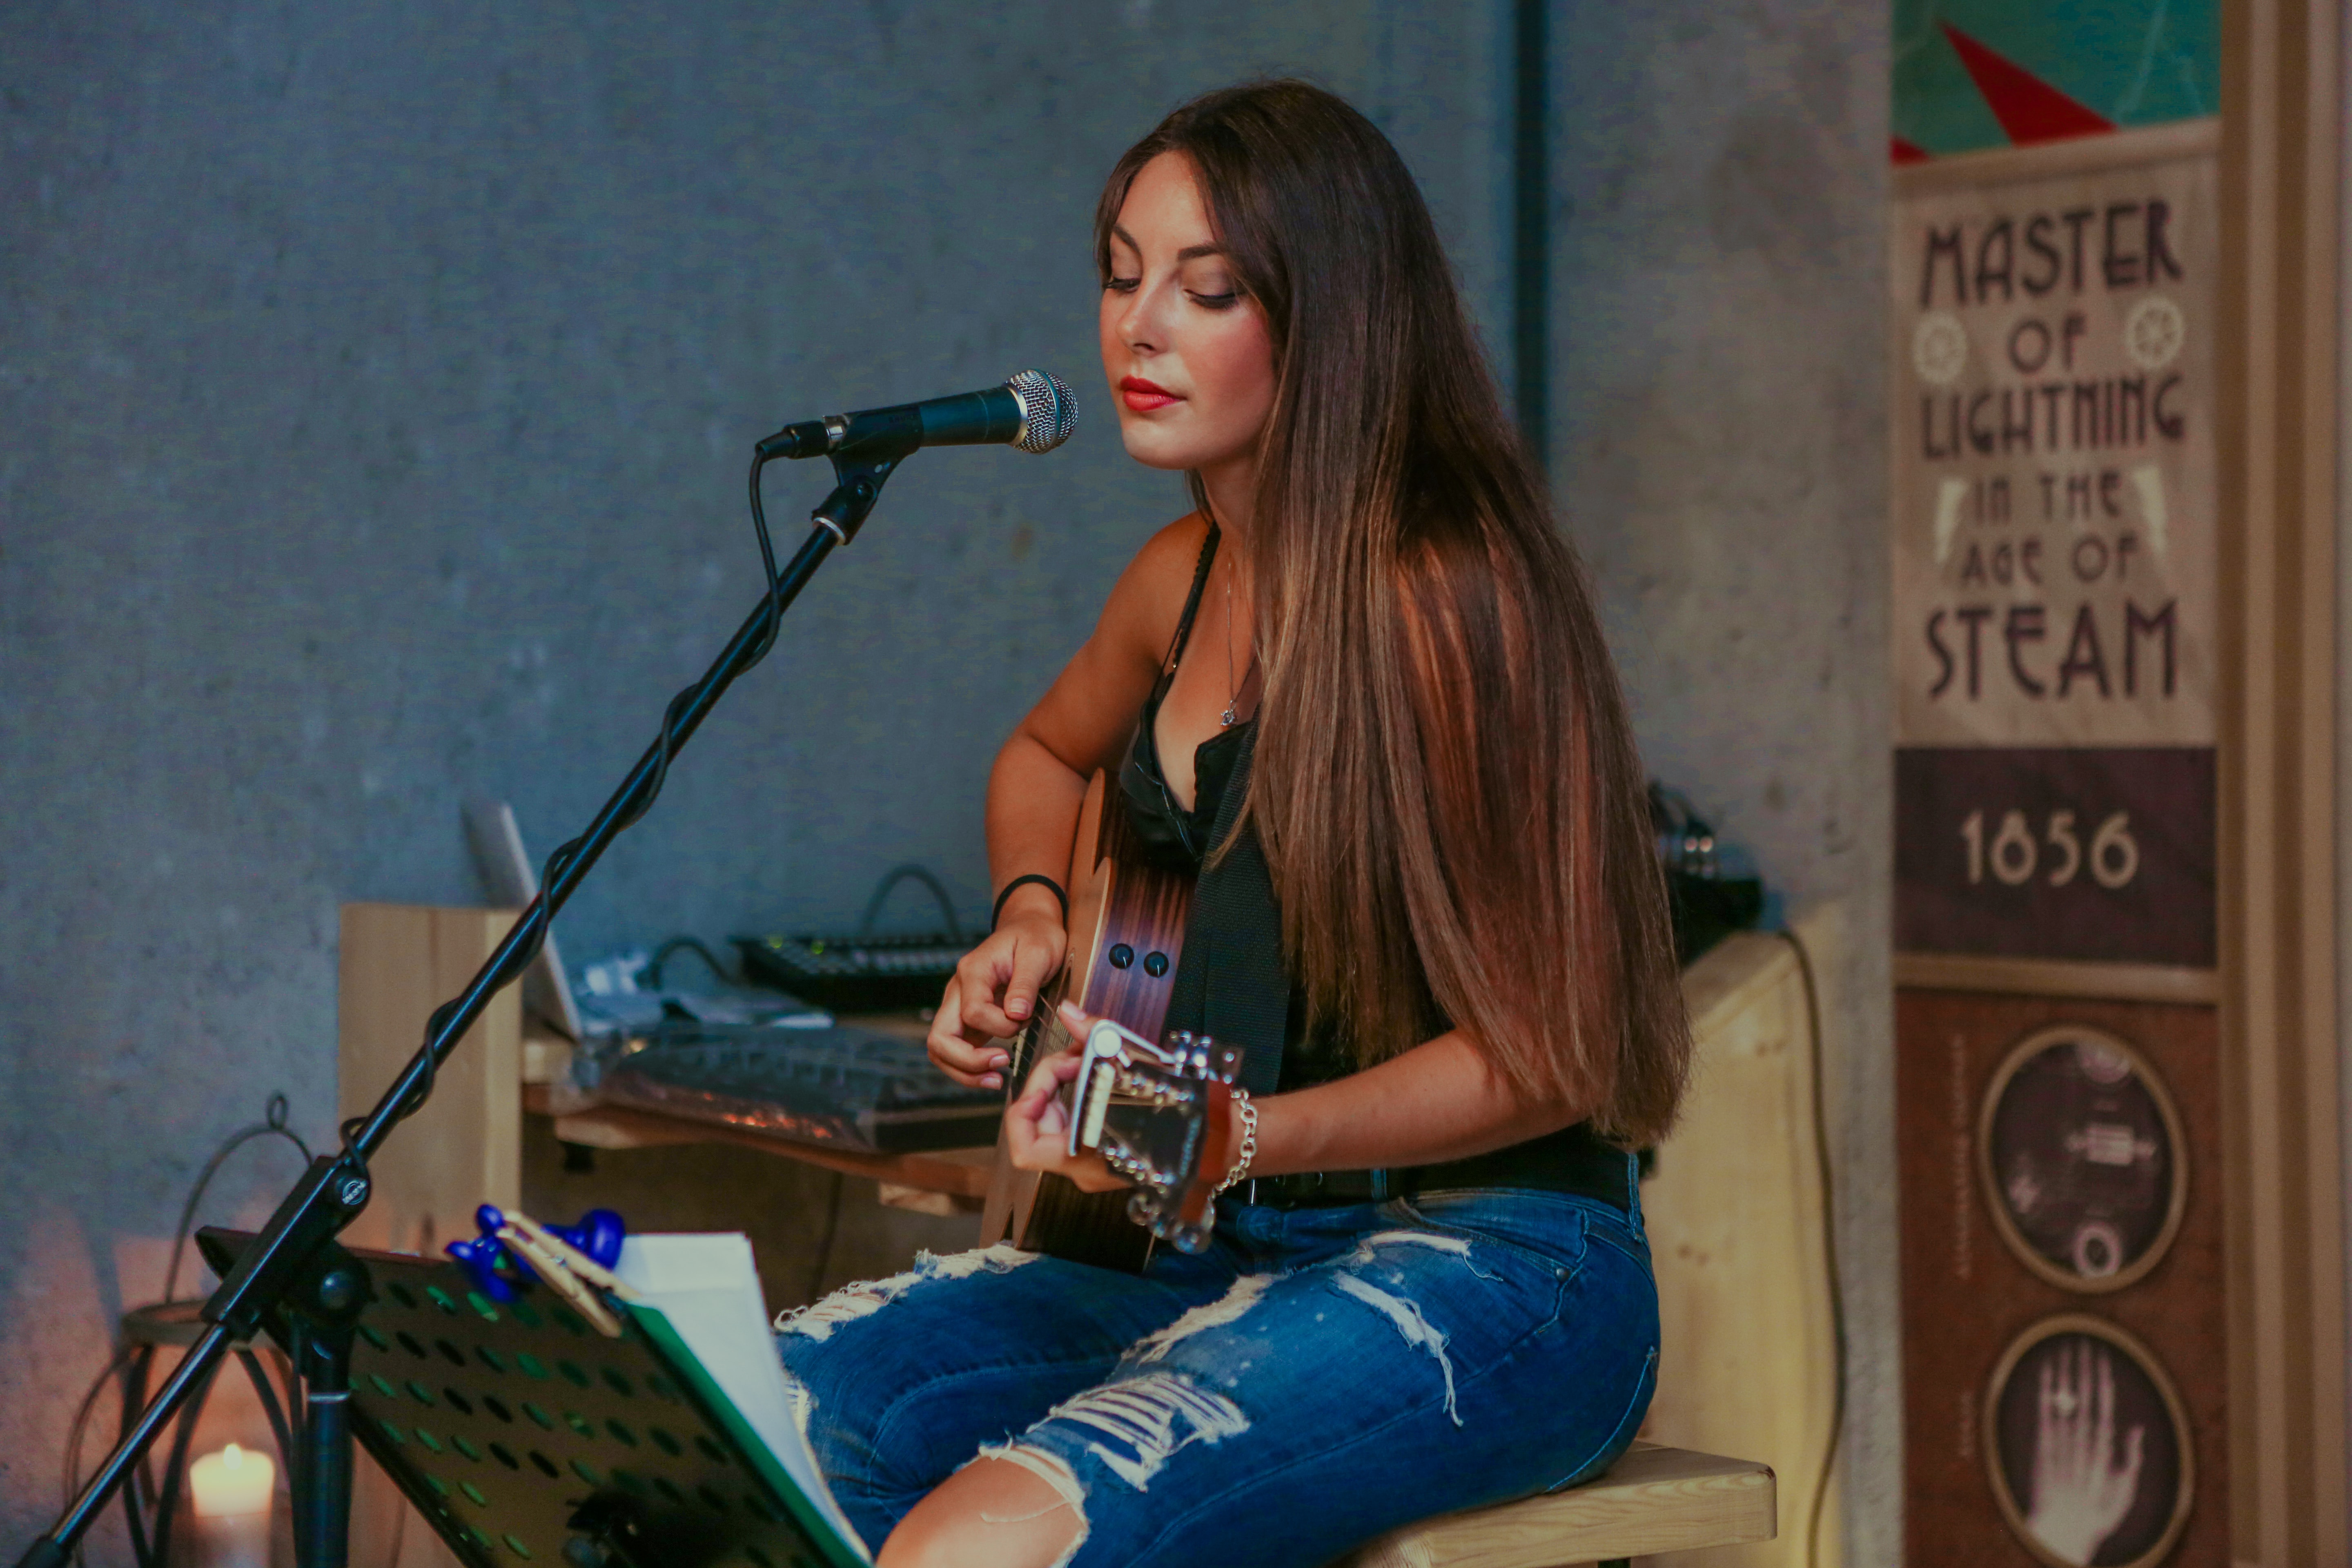 A dark-haired woman in ripped jeans playing acoustic guitar